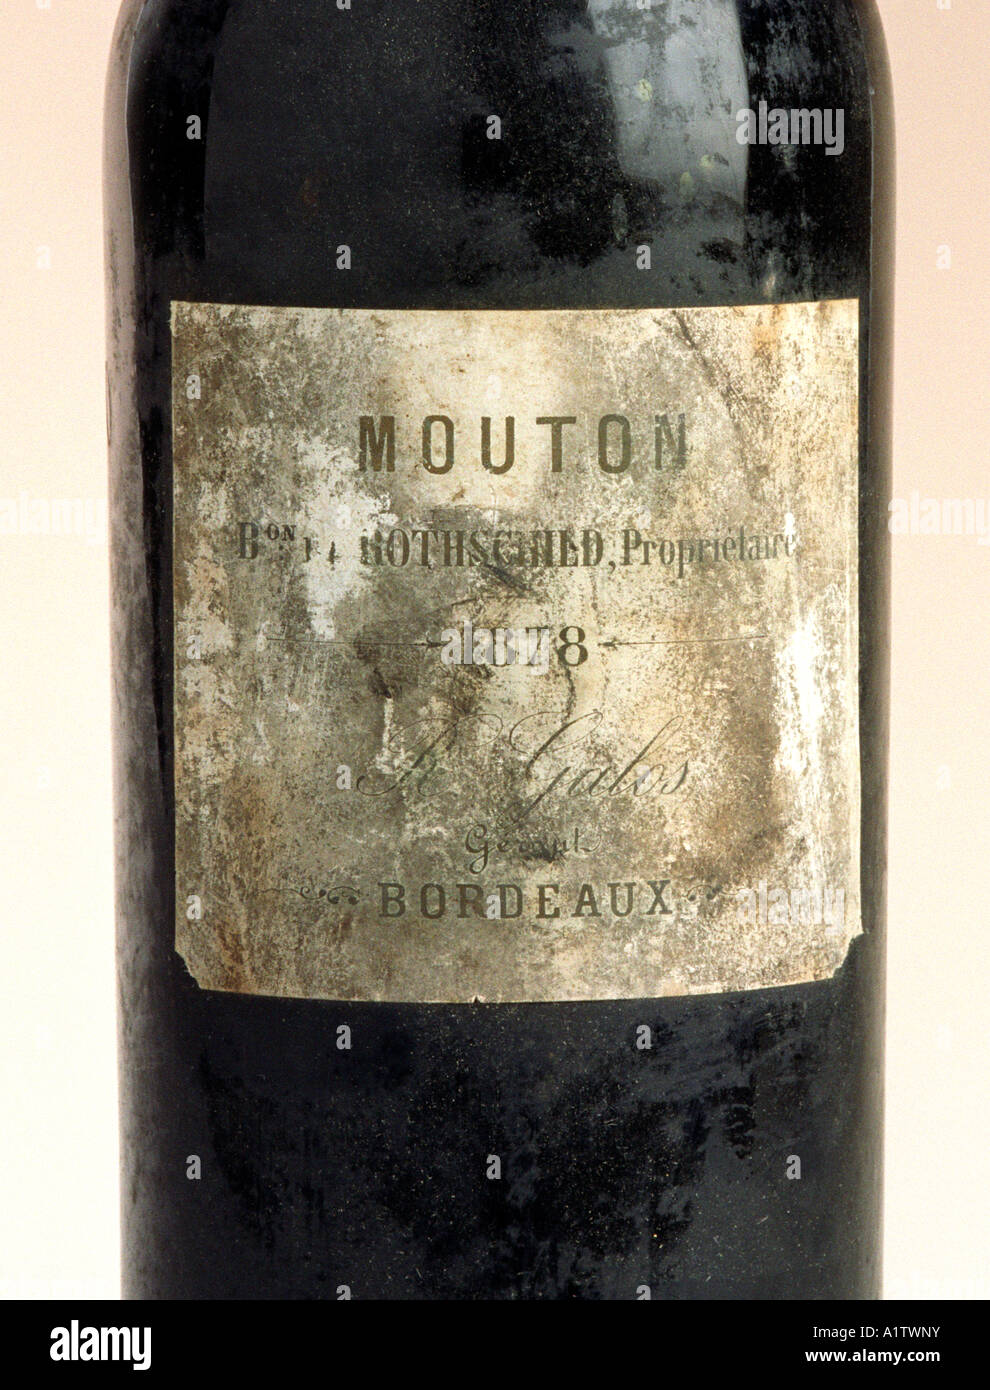 The label on a very rare bottle of 1878 Mouton Rothschild red wine from the Bordeaux region of France - Stock Image